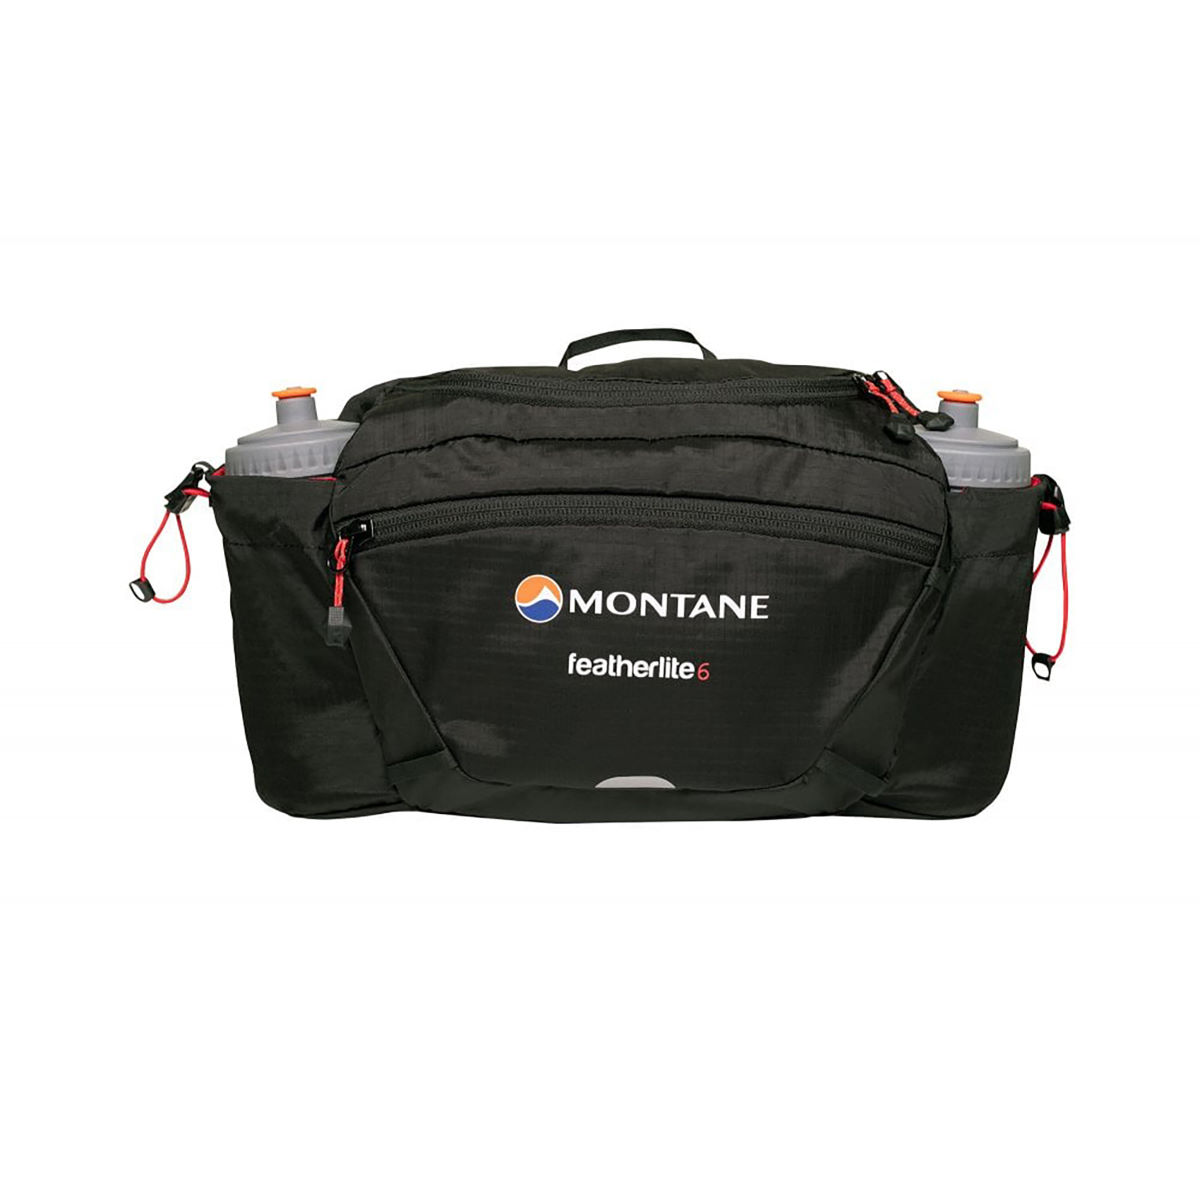 Montane Montane Featherlite 6 Hydration Pack   Waist Bags